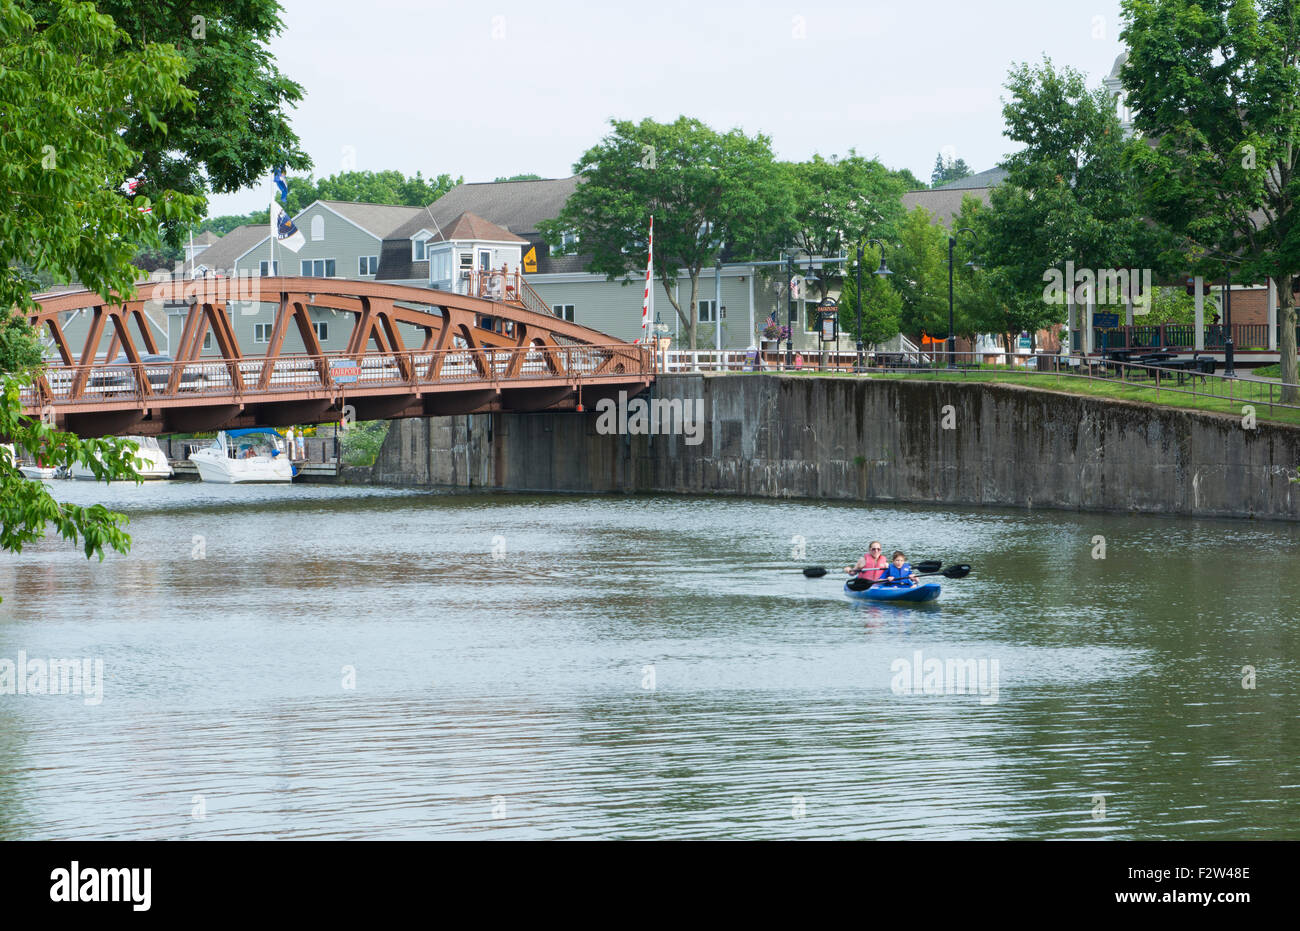 Rochester New York NY small town Fairport village and famous historical Erie Canal with boat and bridge on canal - Stock Image